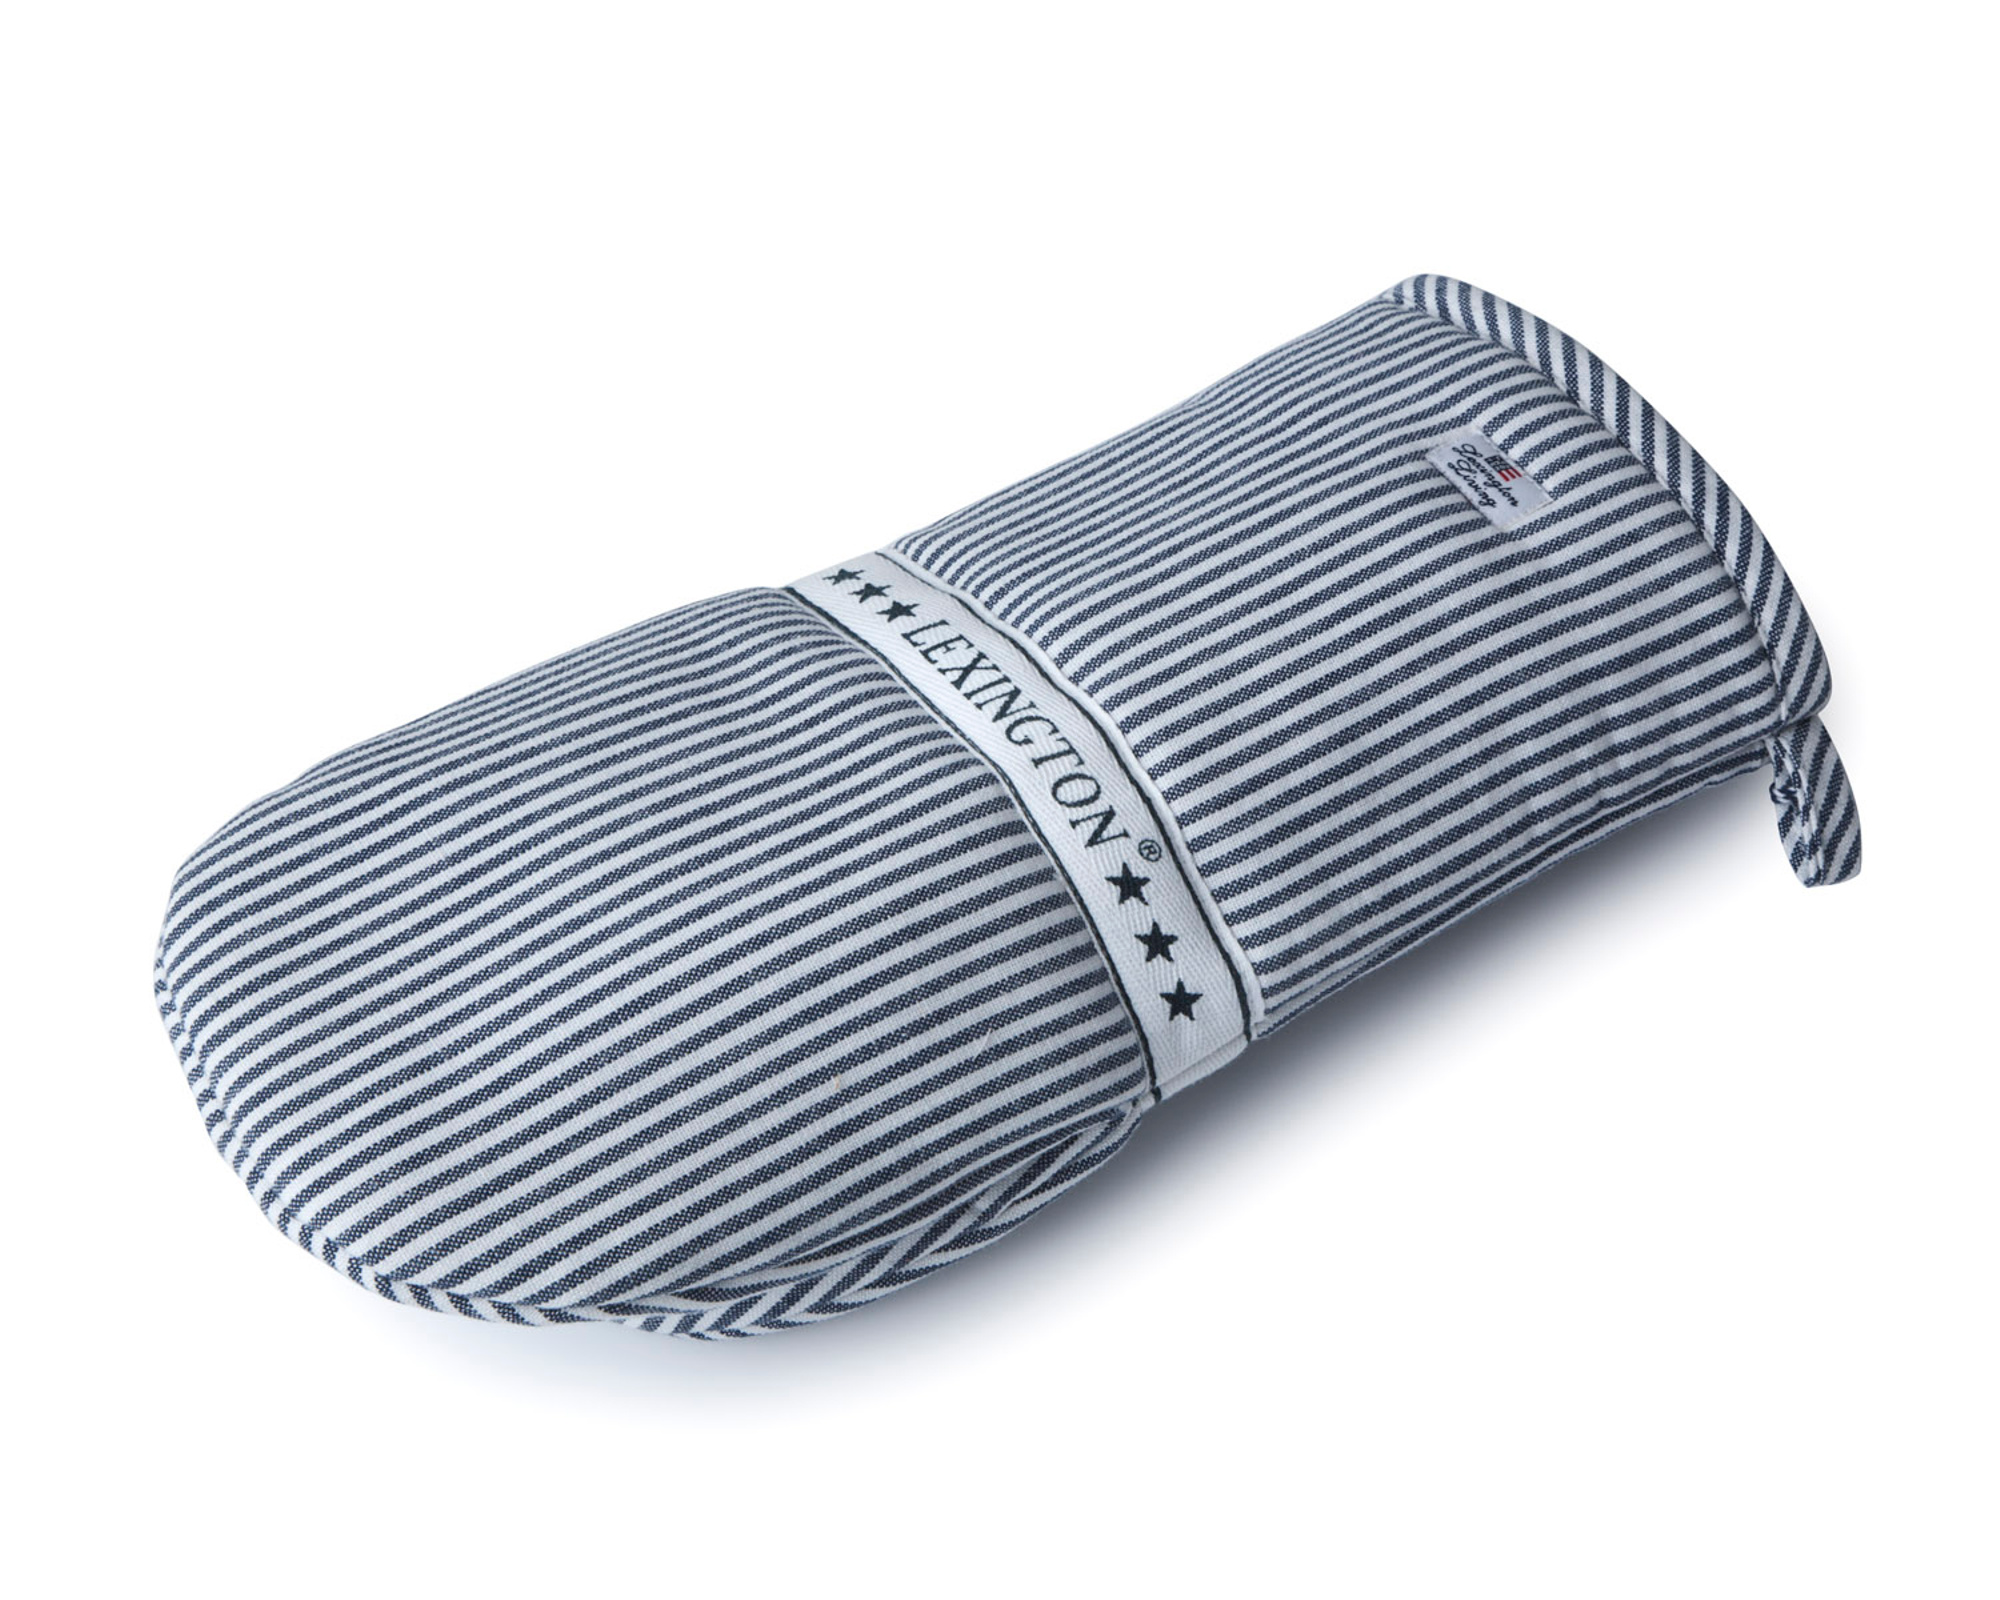 Icons Oxford Navy/White Striped Mitten